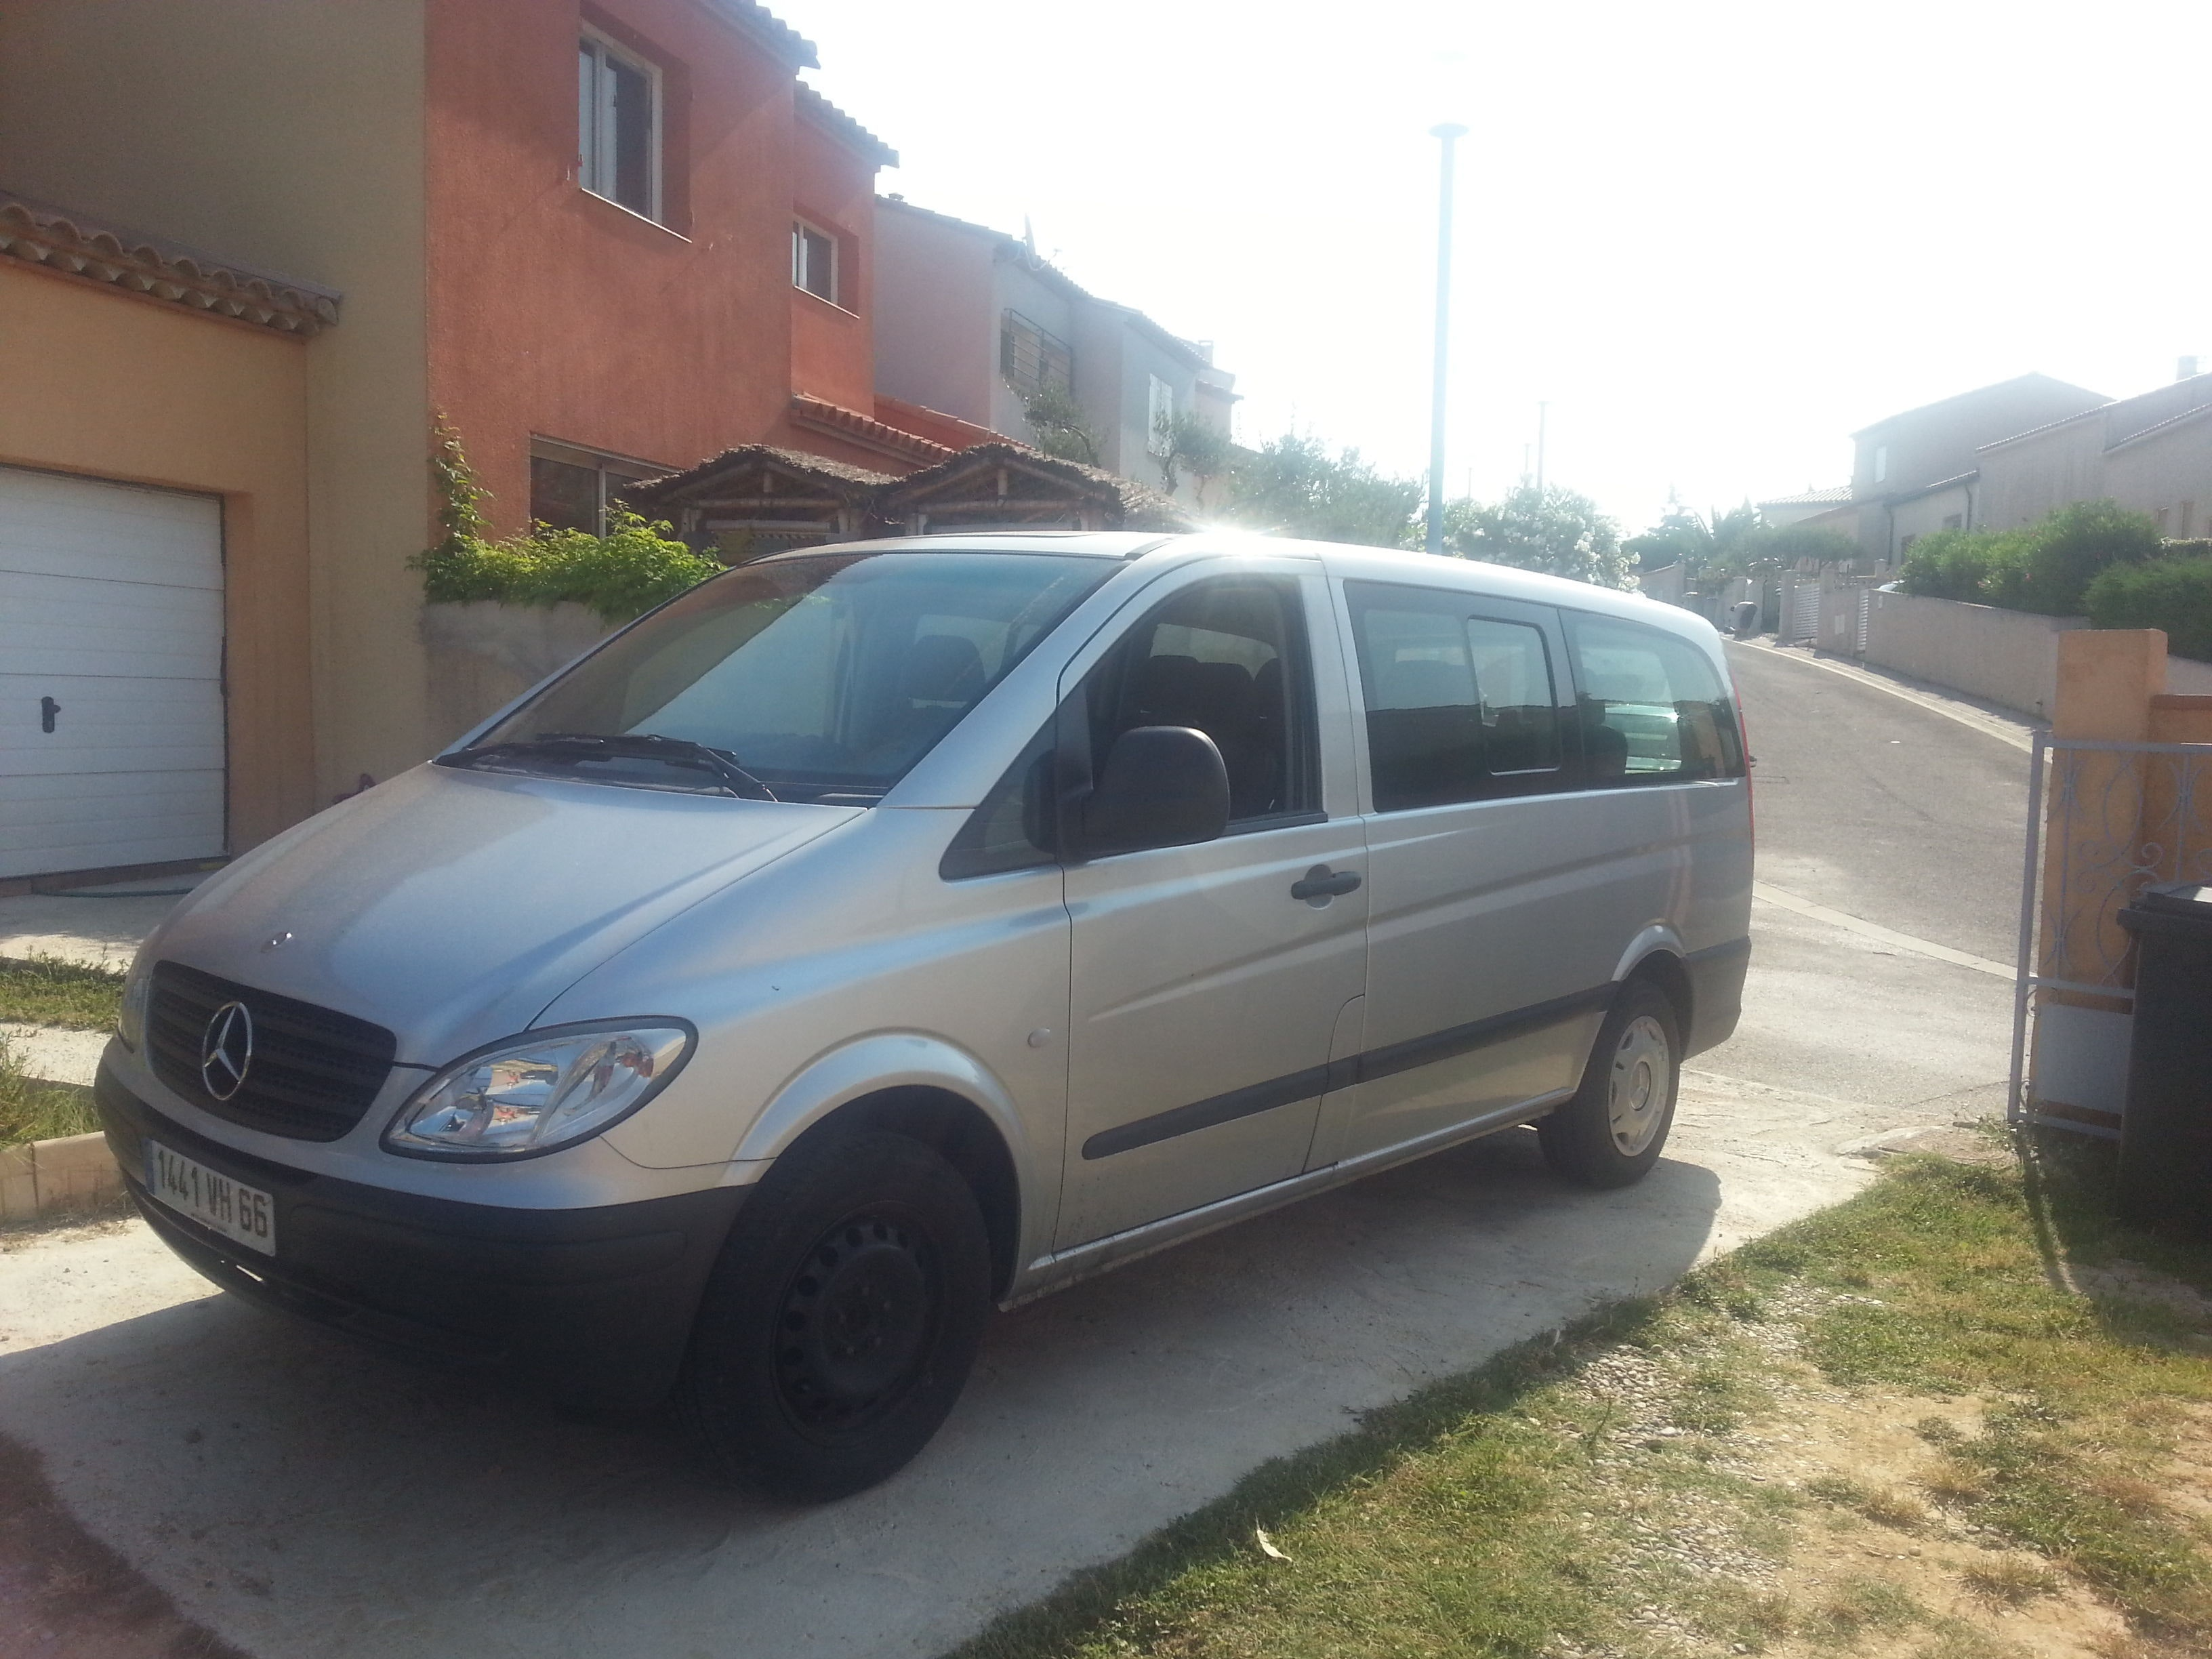 MERCEDES 115CDI 9 PLACES, 2007, Diesel, 9 places et plus